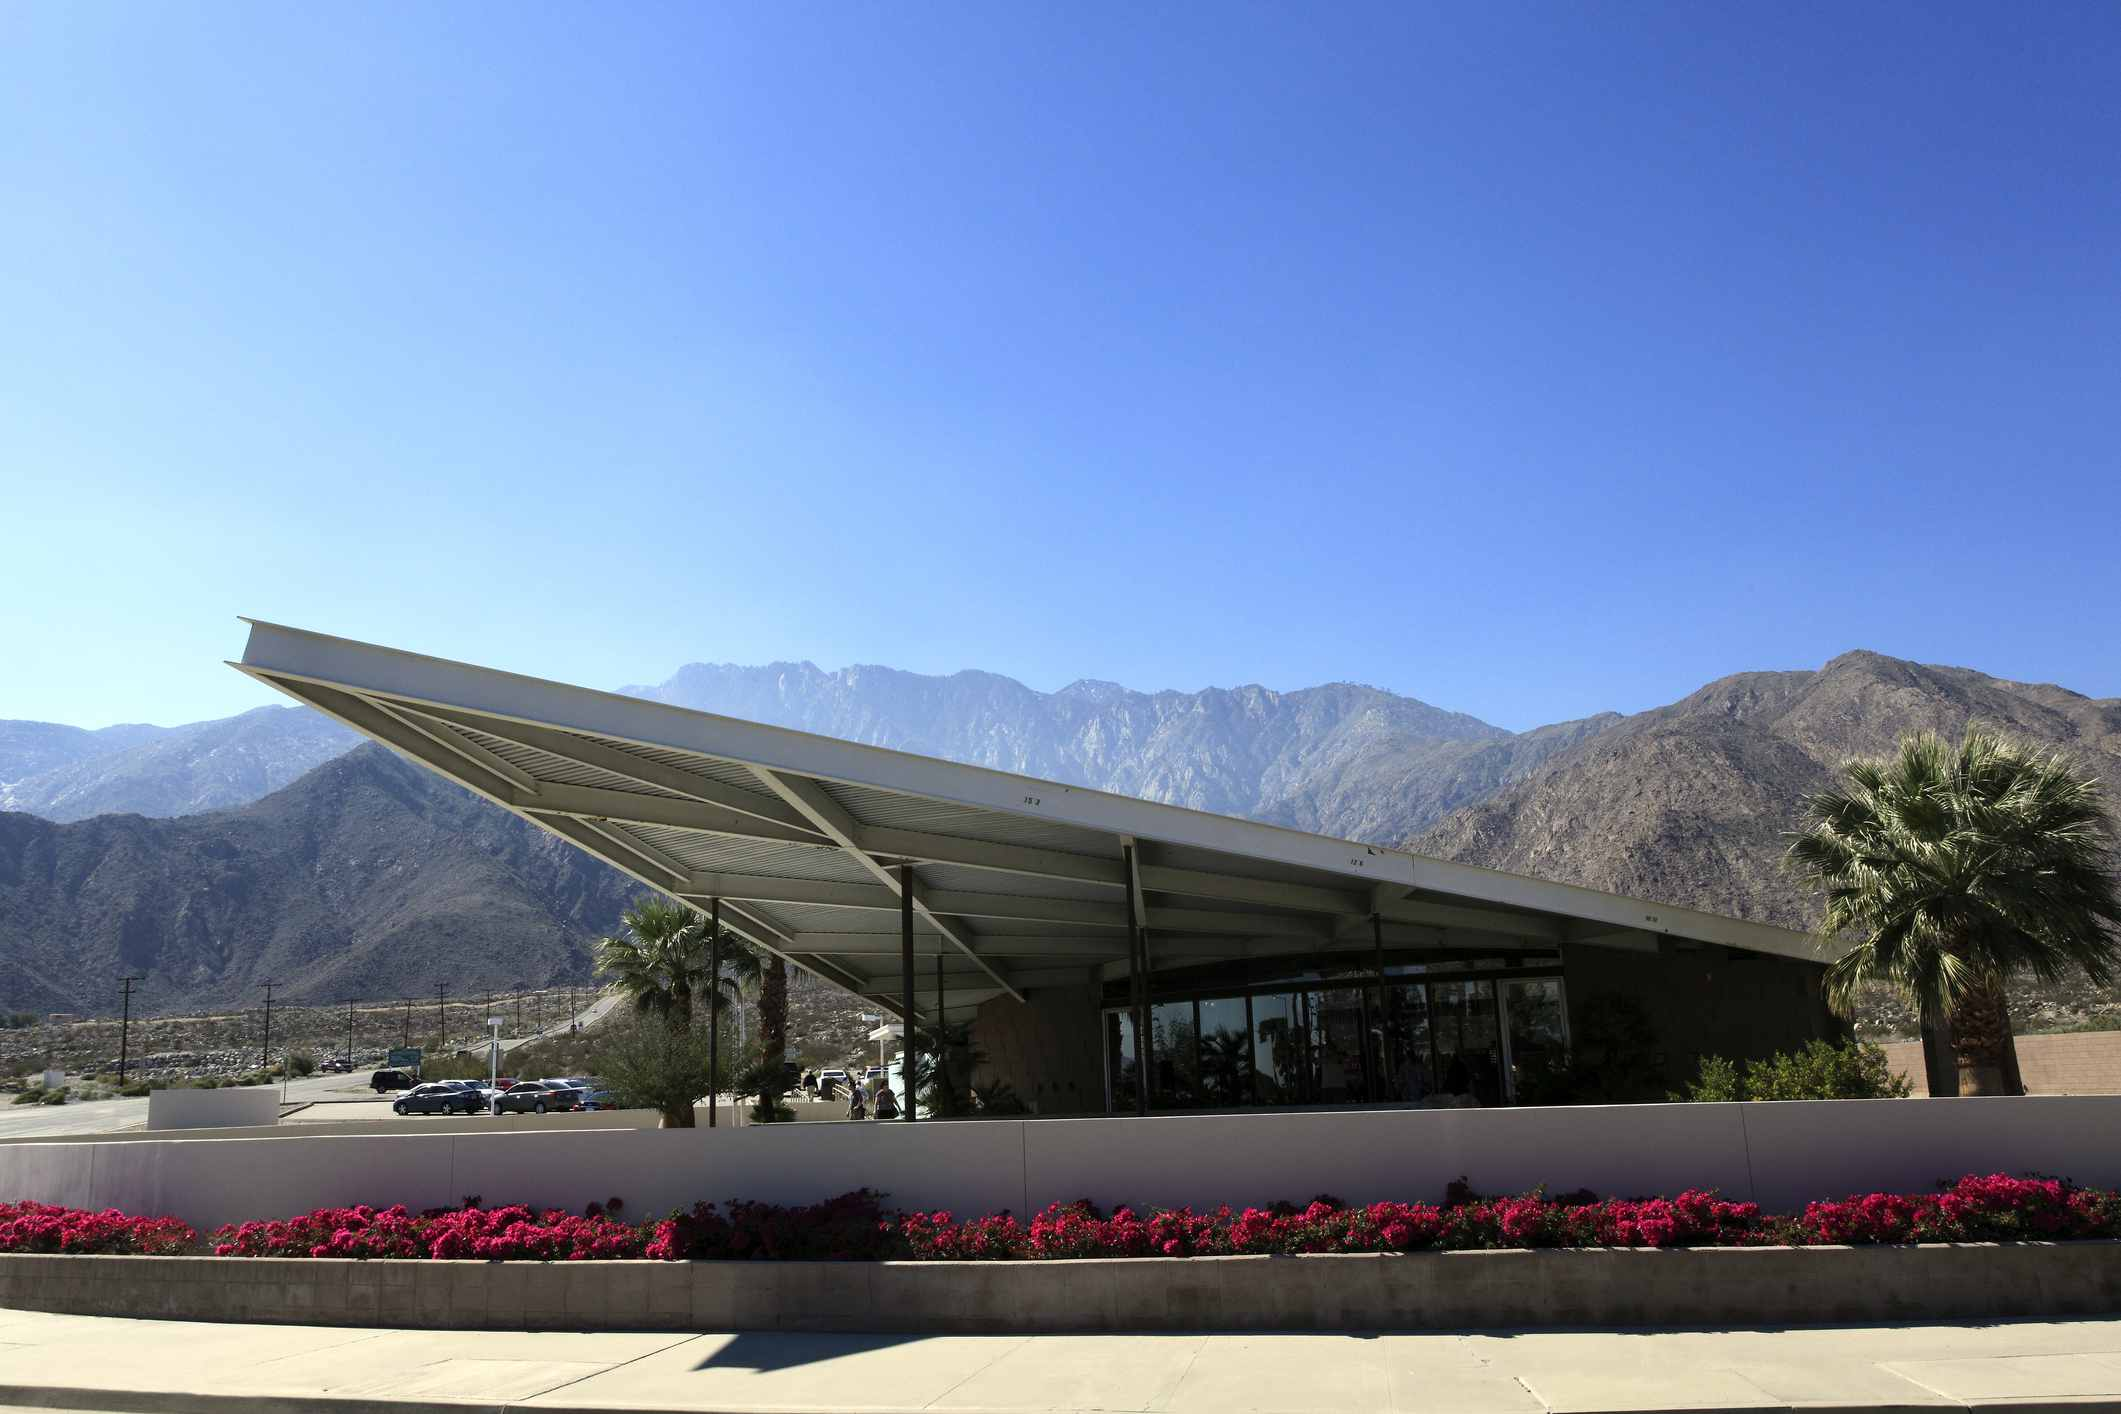 Exterior of palm springs visitors center